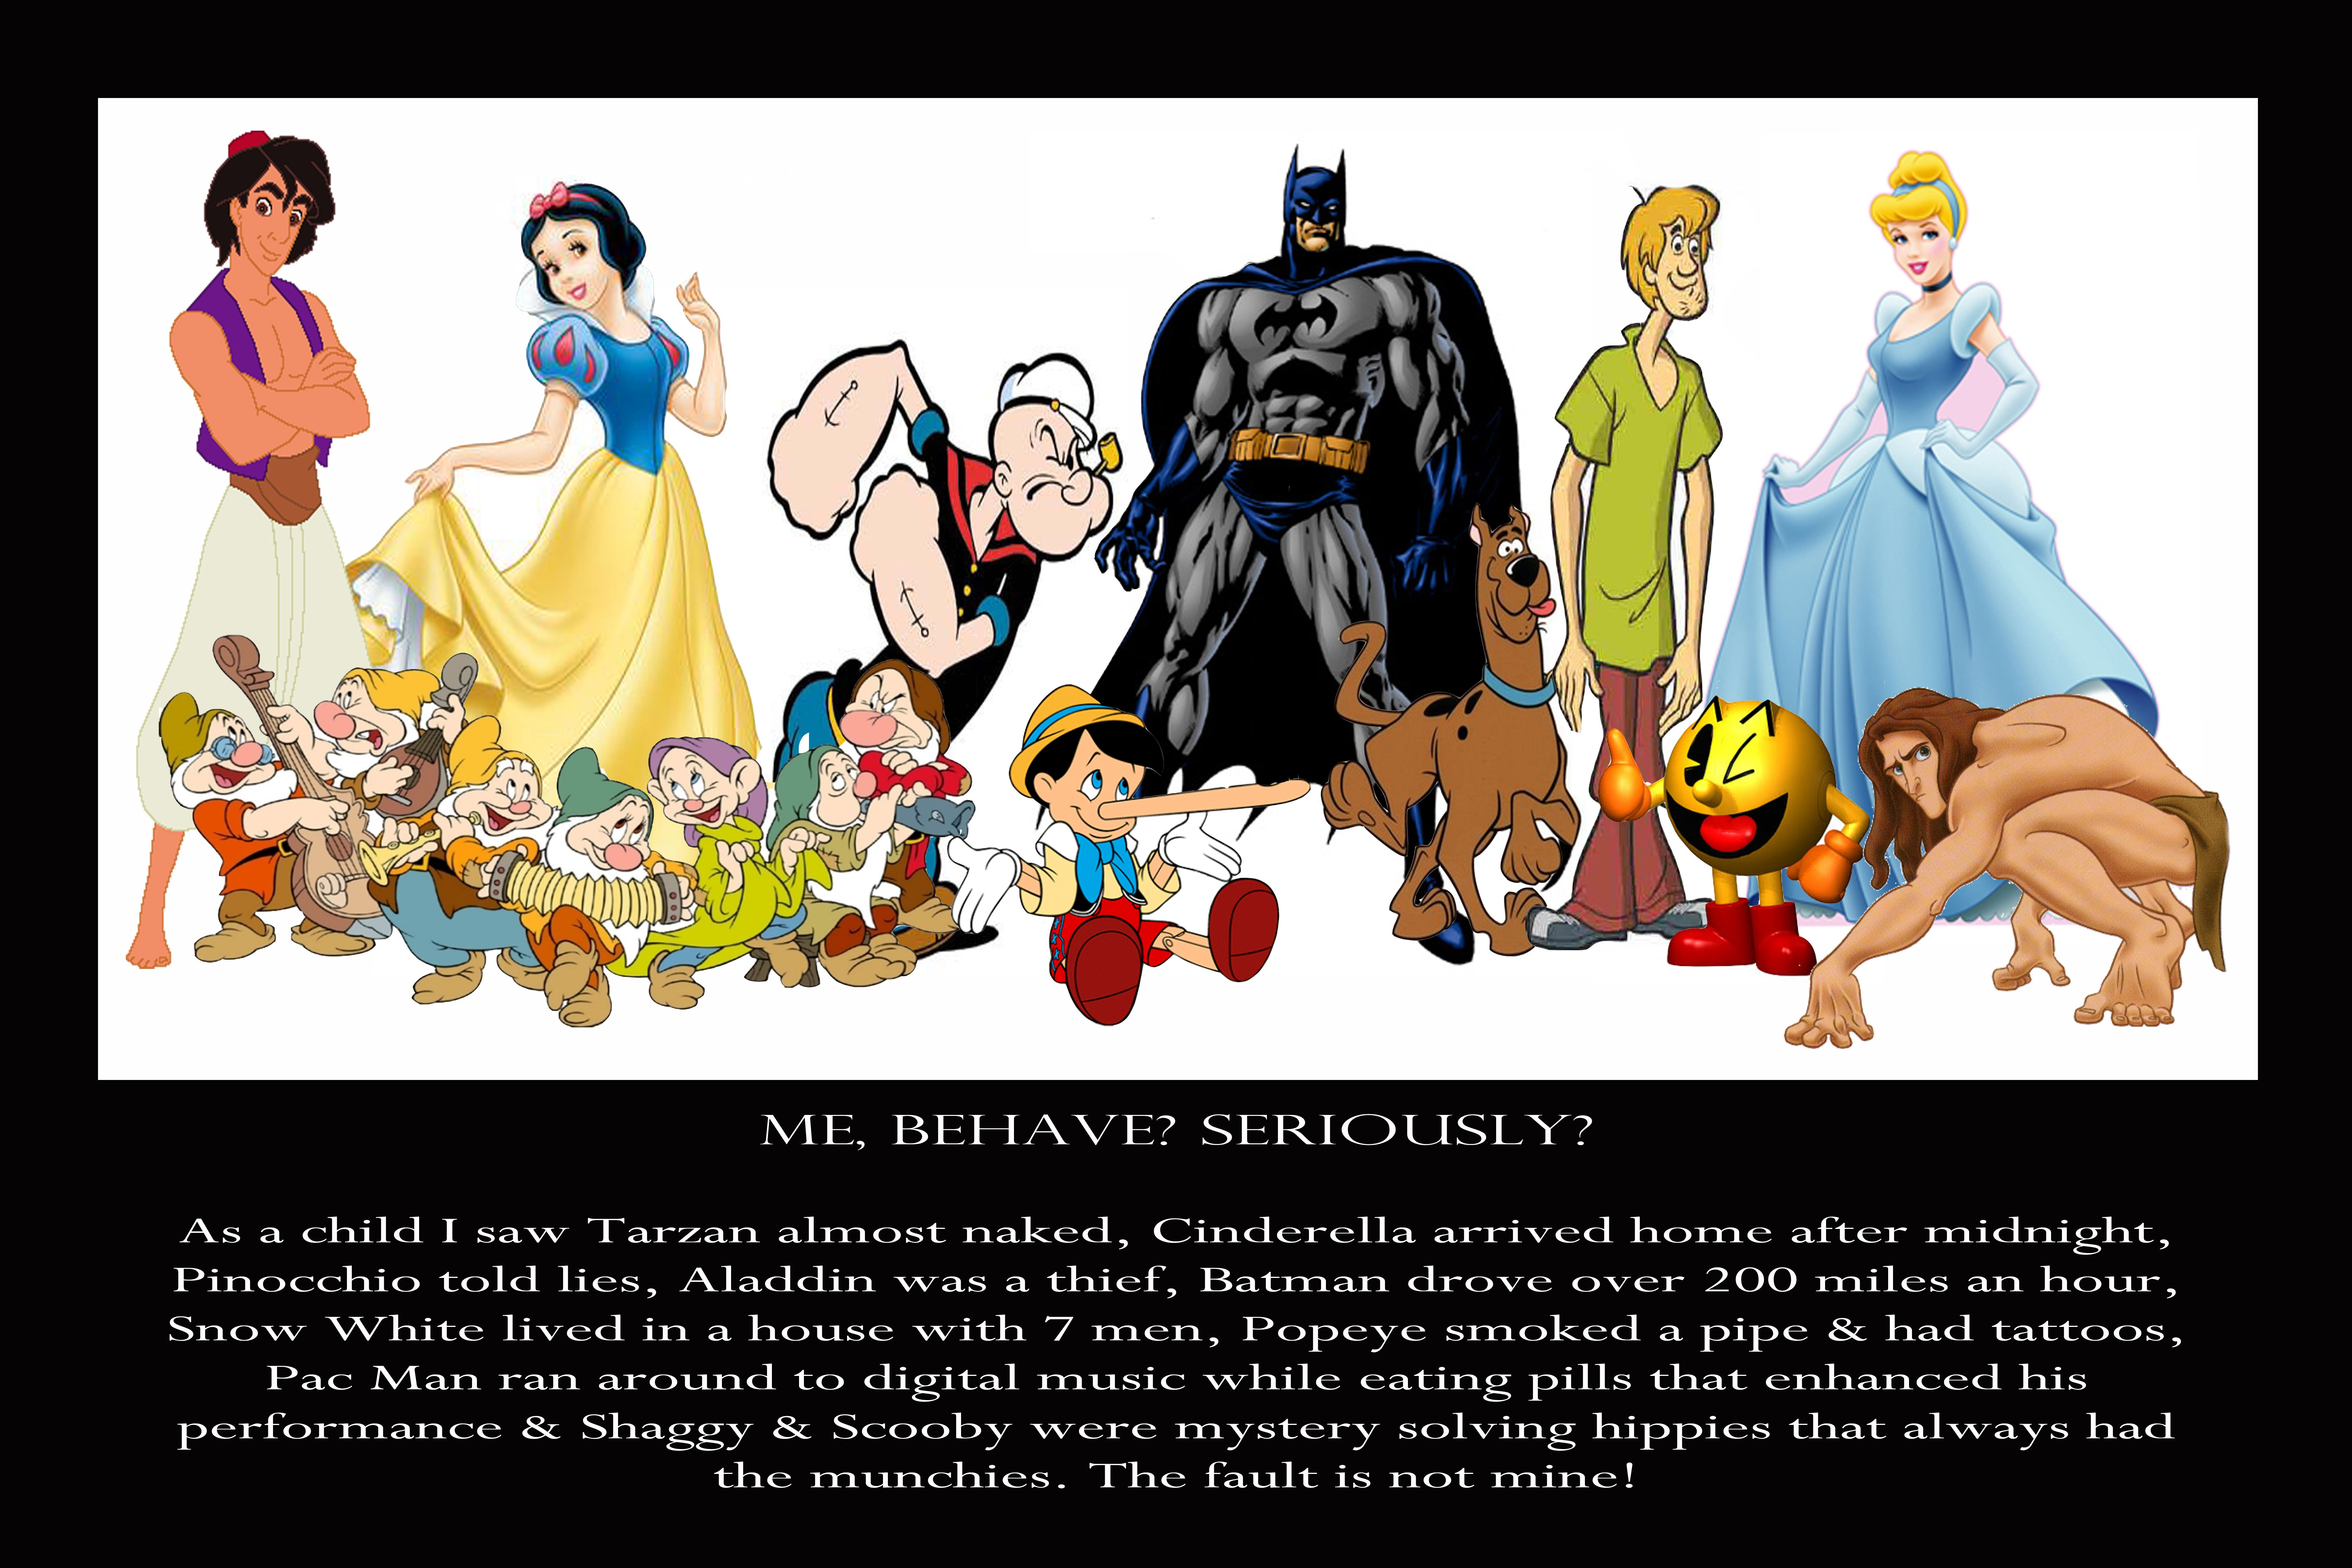 Me? Behave? Seriously? As a child, I saw Tarzan almost